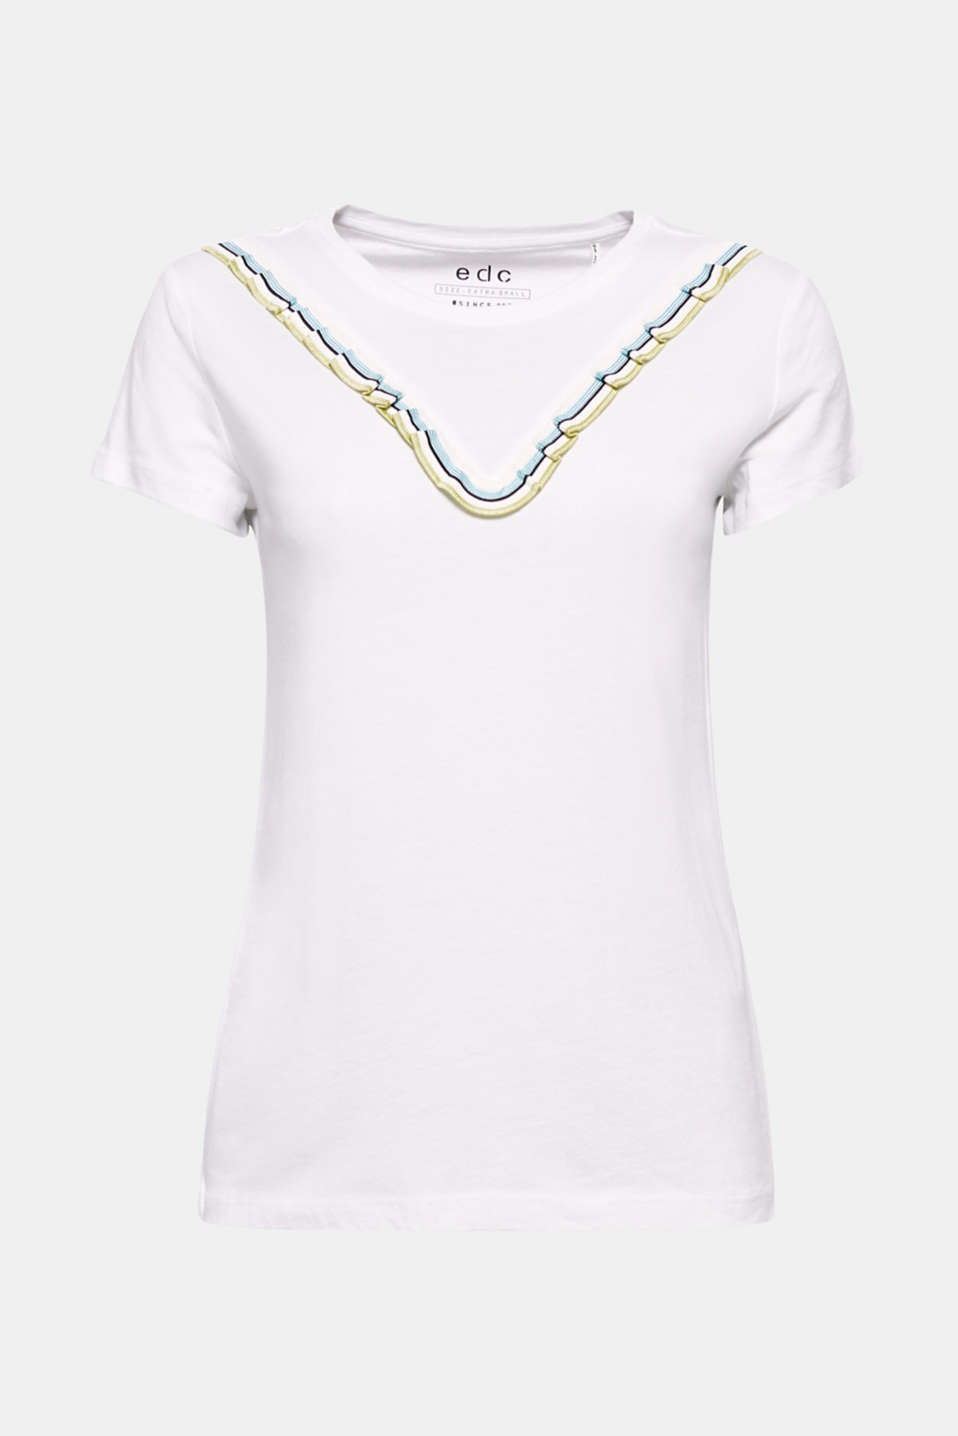 Pretty and feminine! This t-shirt impresses with its colourful, feminine frill detail over the bust.